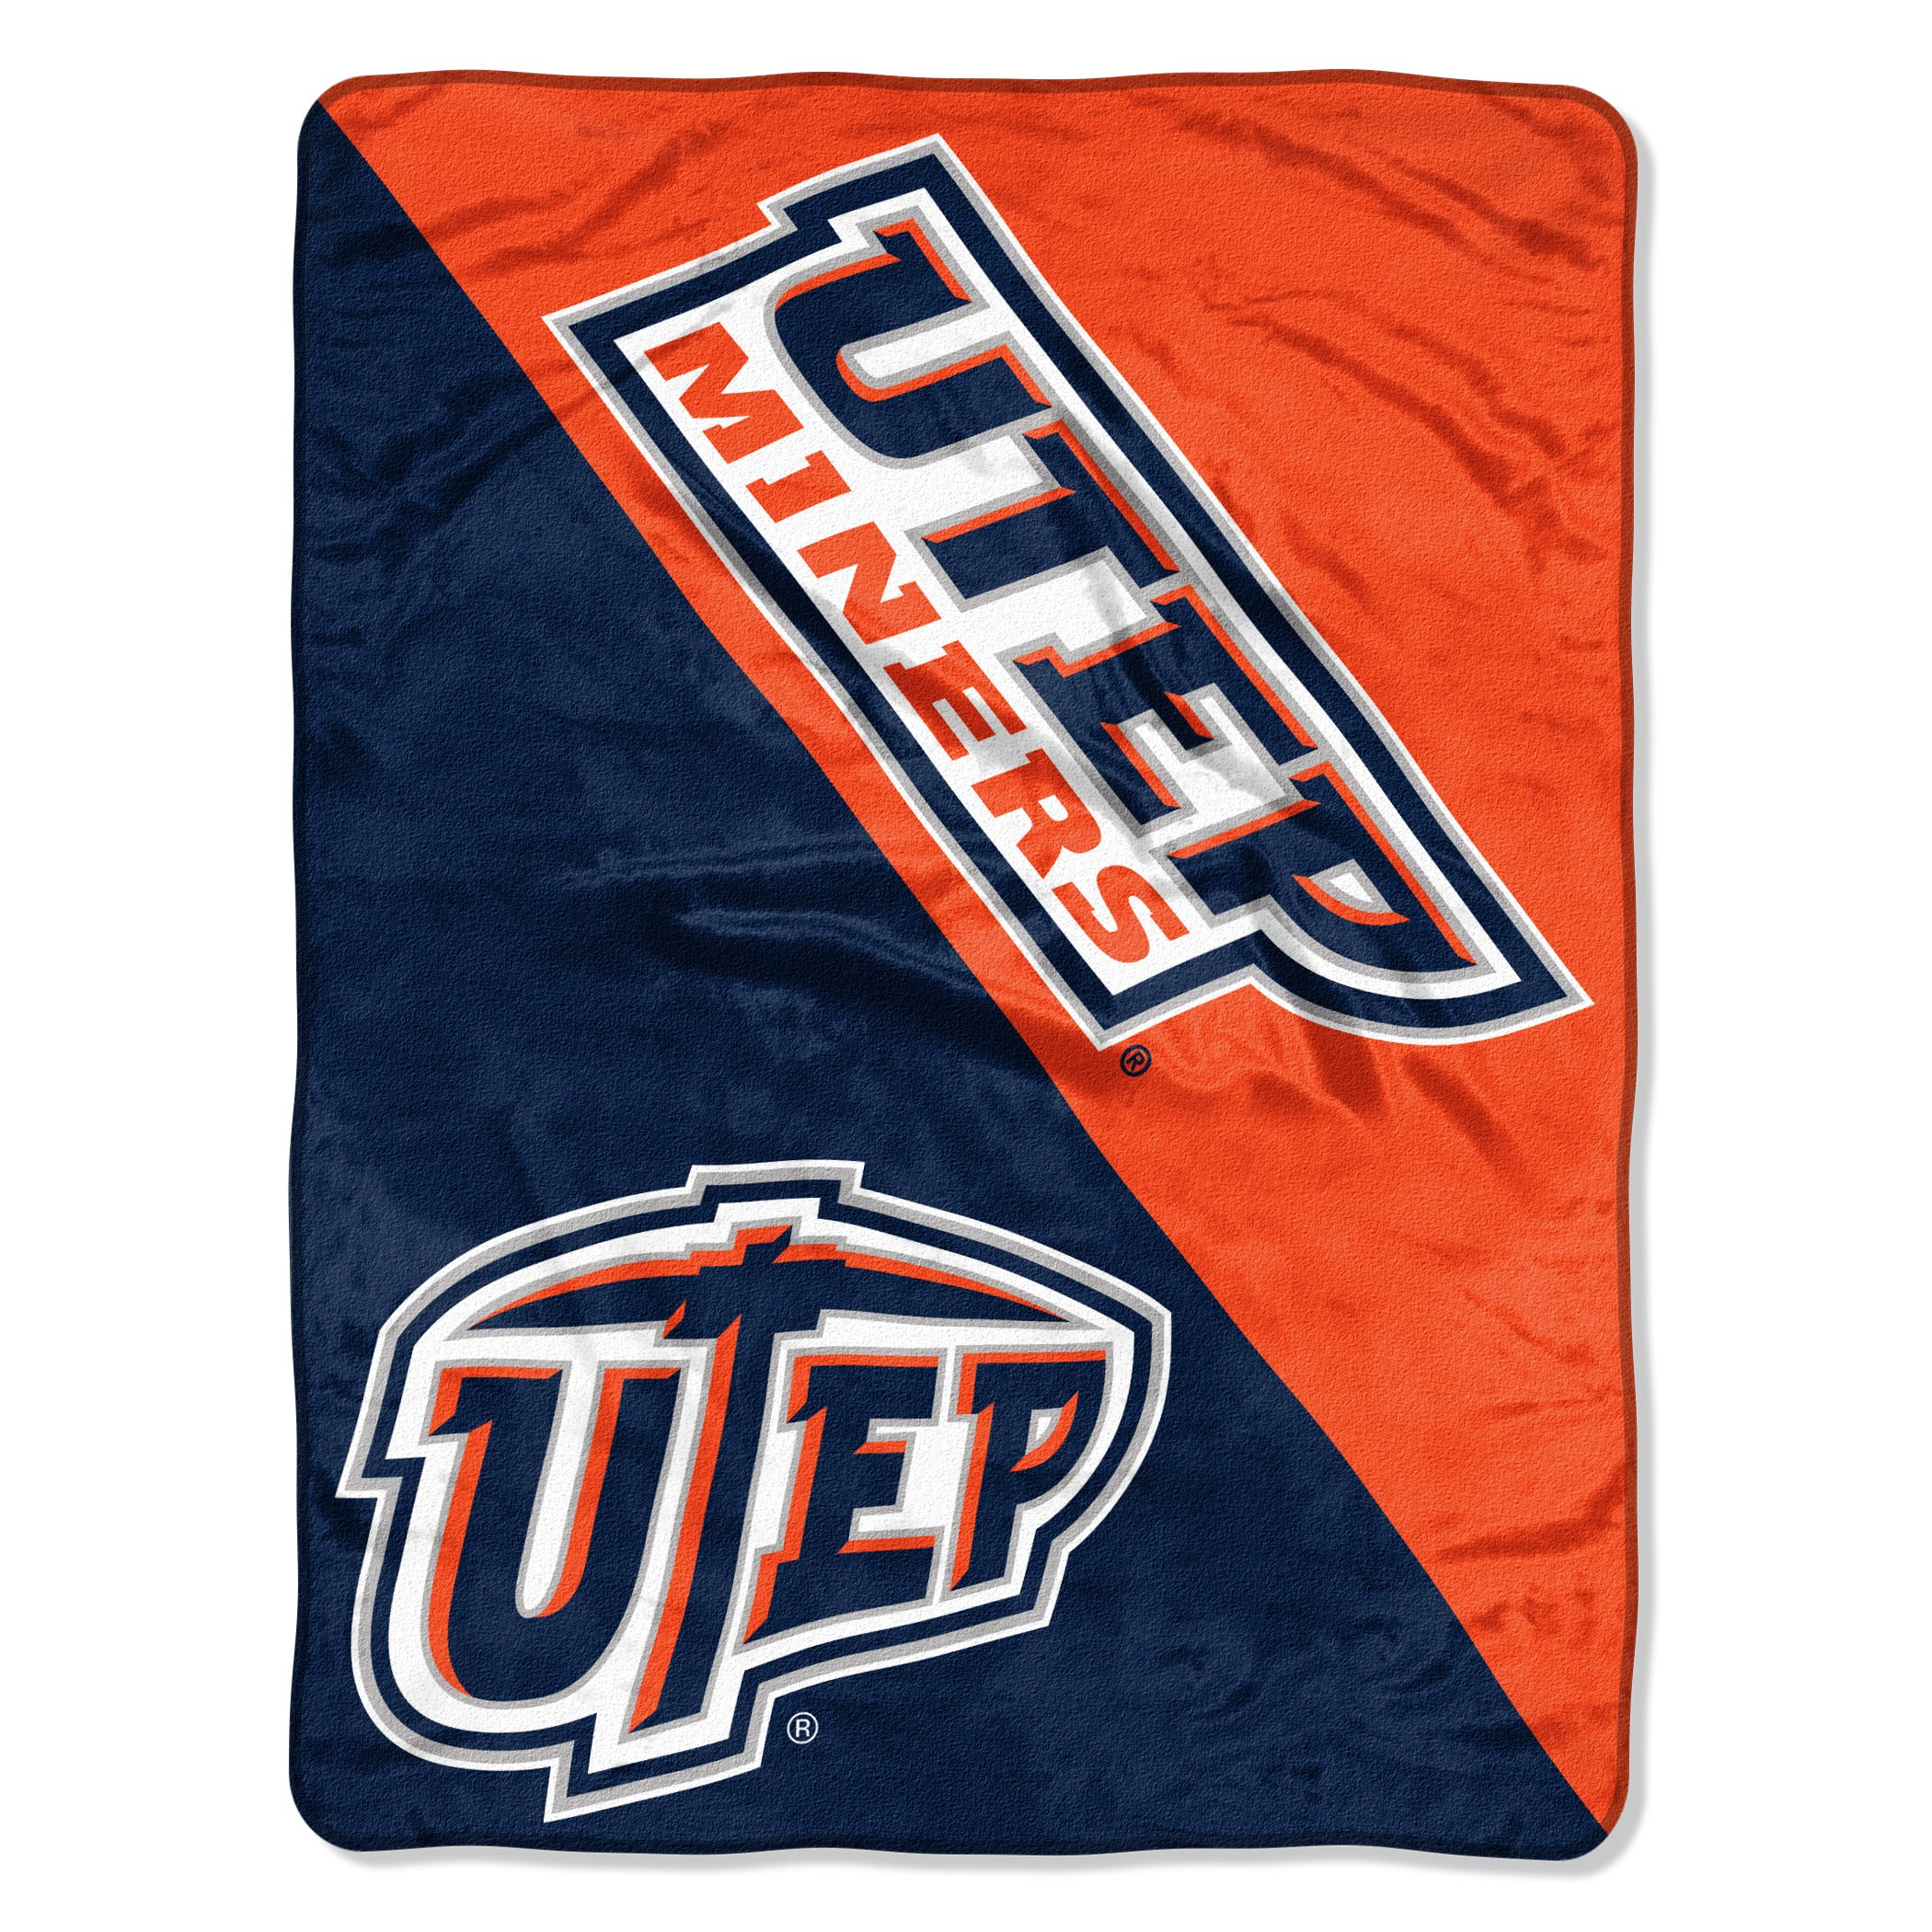 The Northwest Company Officially Licensed NCAA Texas El Paso Miners Halftone Micro Raschel Throw Blanket, 46'' x 60'', Multi Color by The Northwest Company